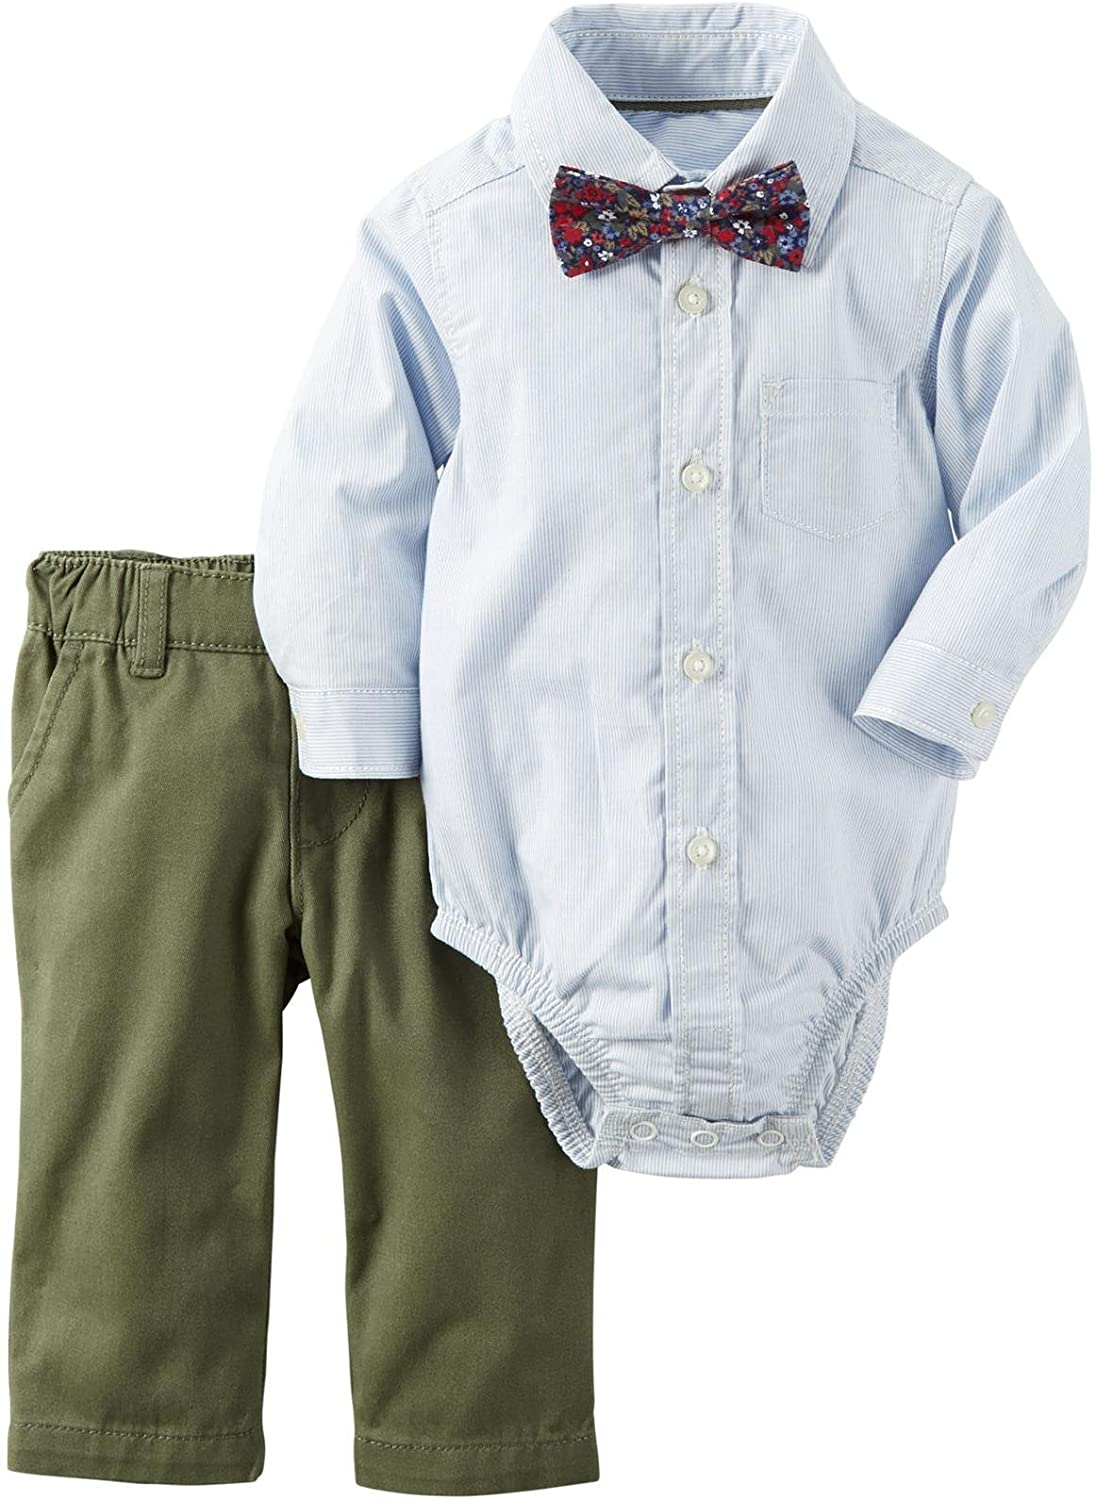 Carter's Baby Boys' 3 Pc Sets 120g110